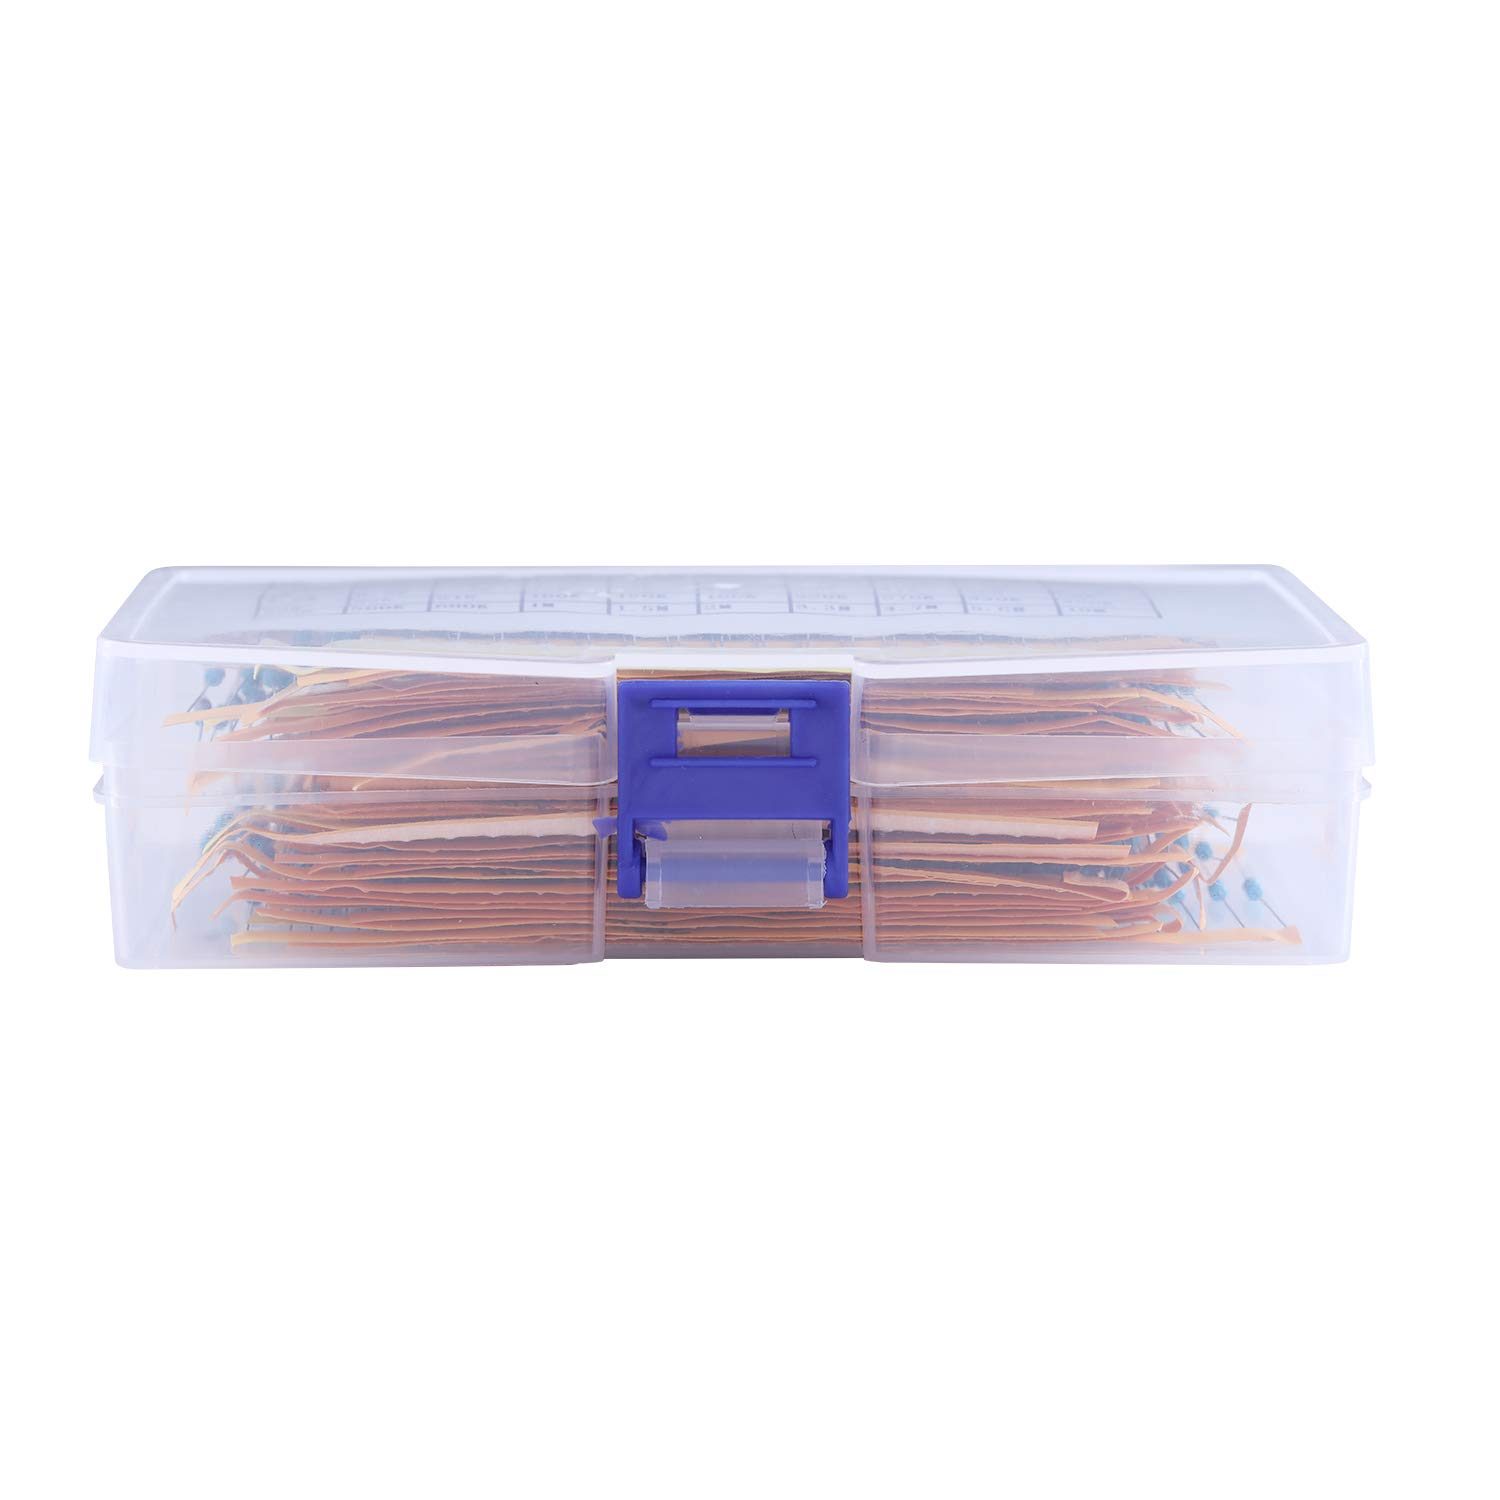 1400 Pieces 70 Values Resistor Kit 1/% Assorted Resistors 1//4W Metal Film Resistors Assortment with Storage Box for DIY Projects and Experiments